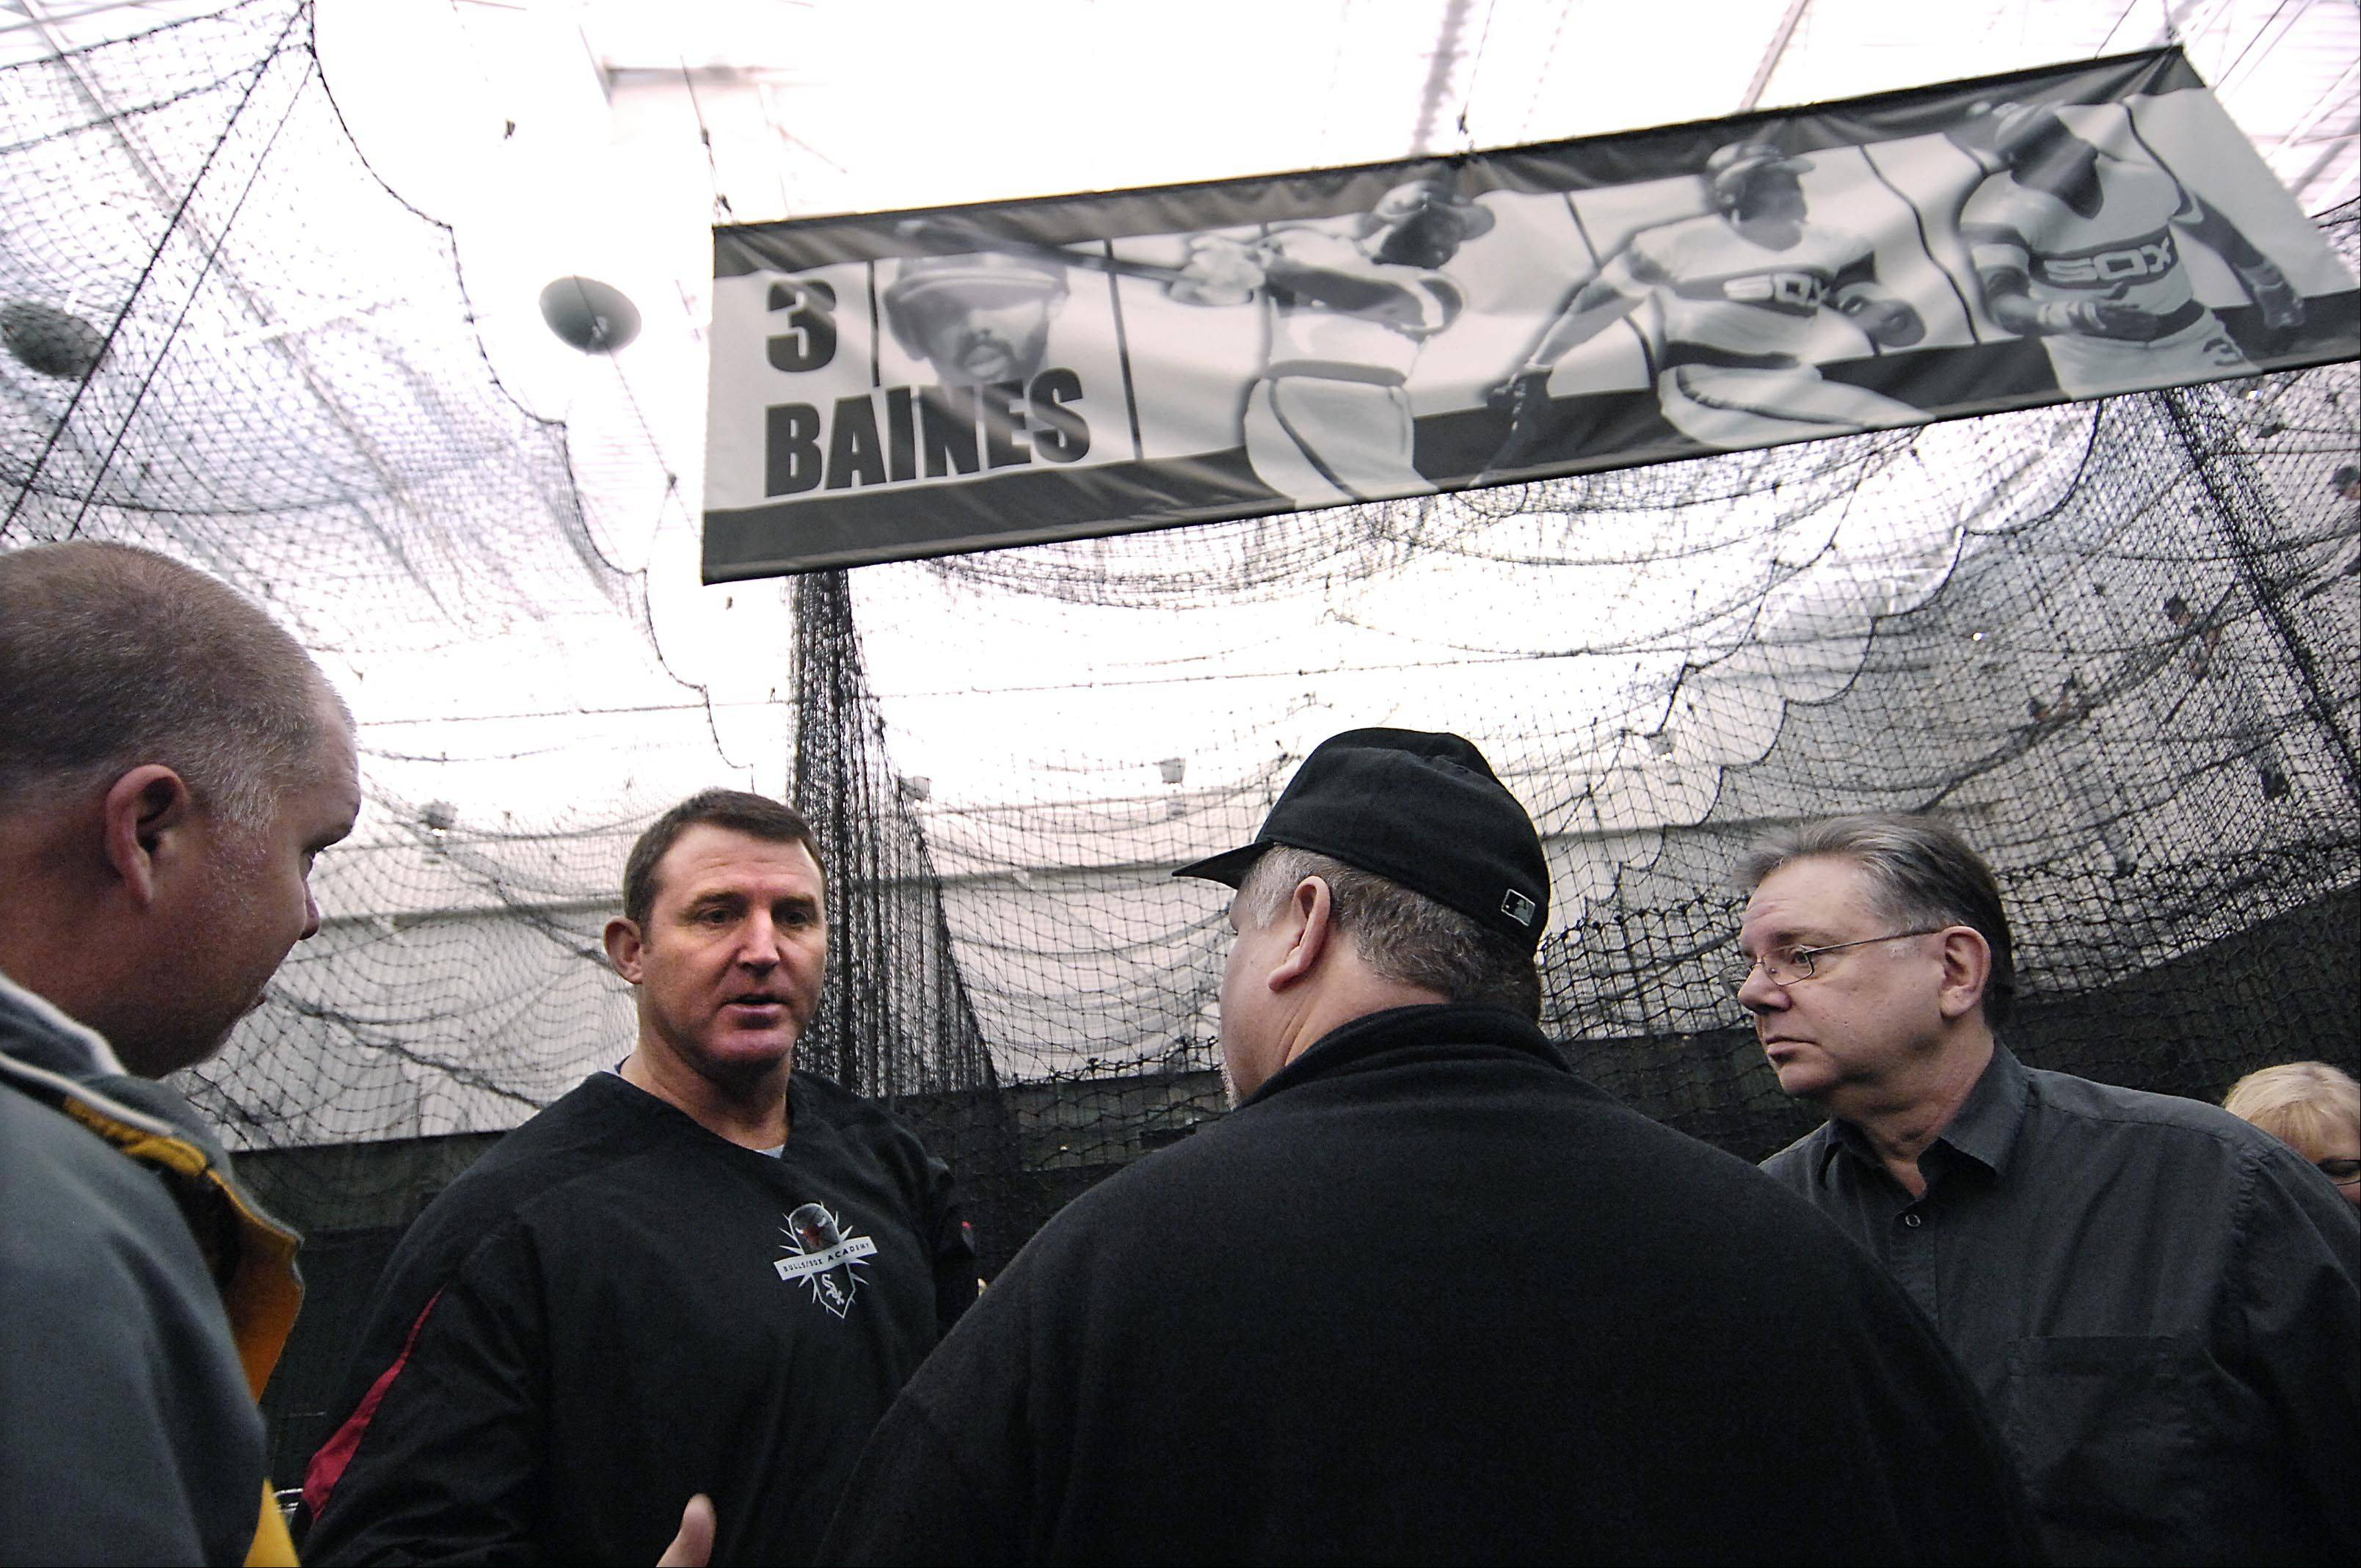 Five-time Major League Baseball All-Star and former Chicago White Sox slugger Jim Thome talks with the fathers of young players Sunday at the Chicago Bulls/White Sox Academy in Lisle. Thome, who still works for the White Sox organization, was putting on hitting clinic for young players.